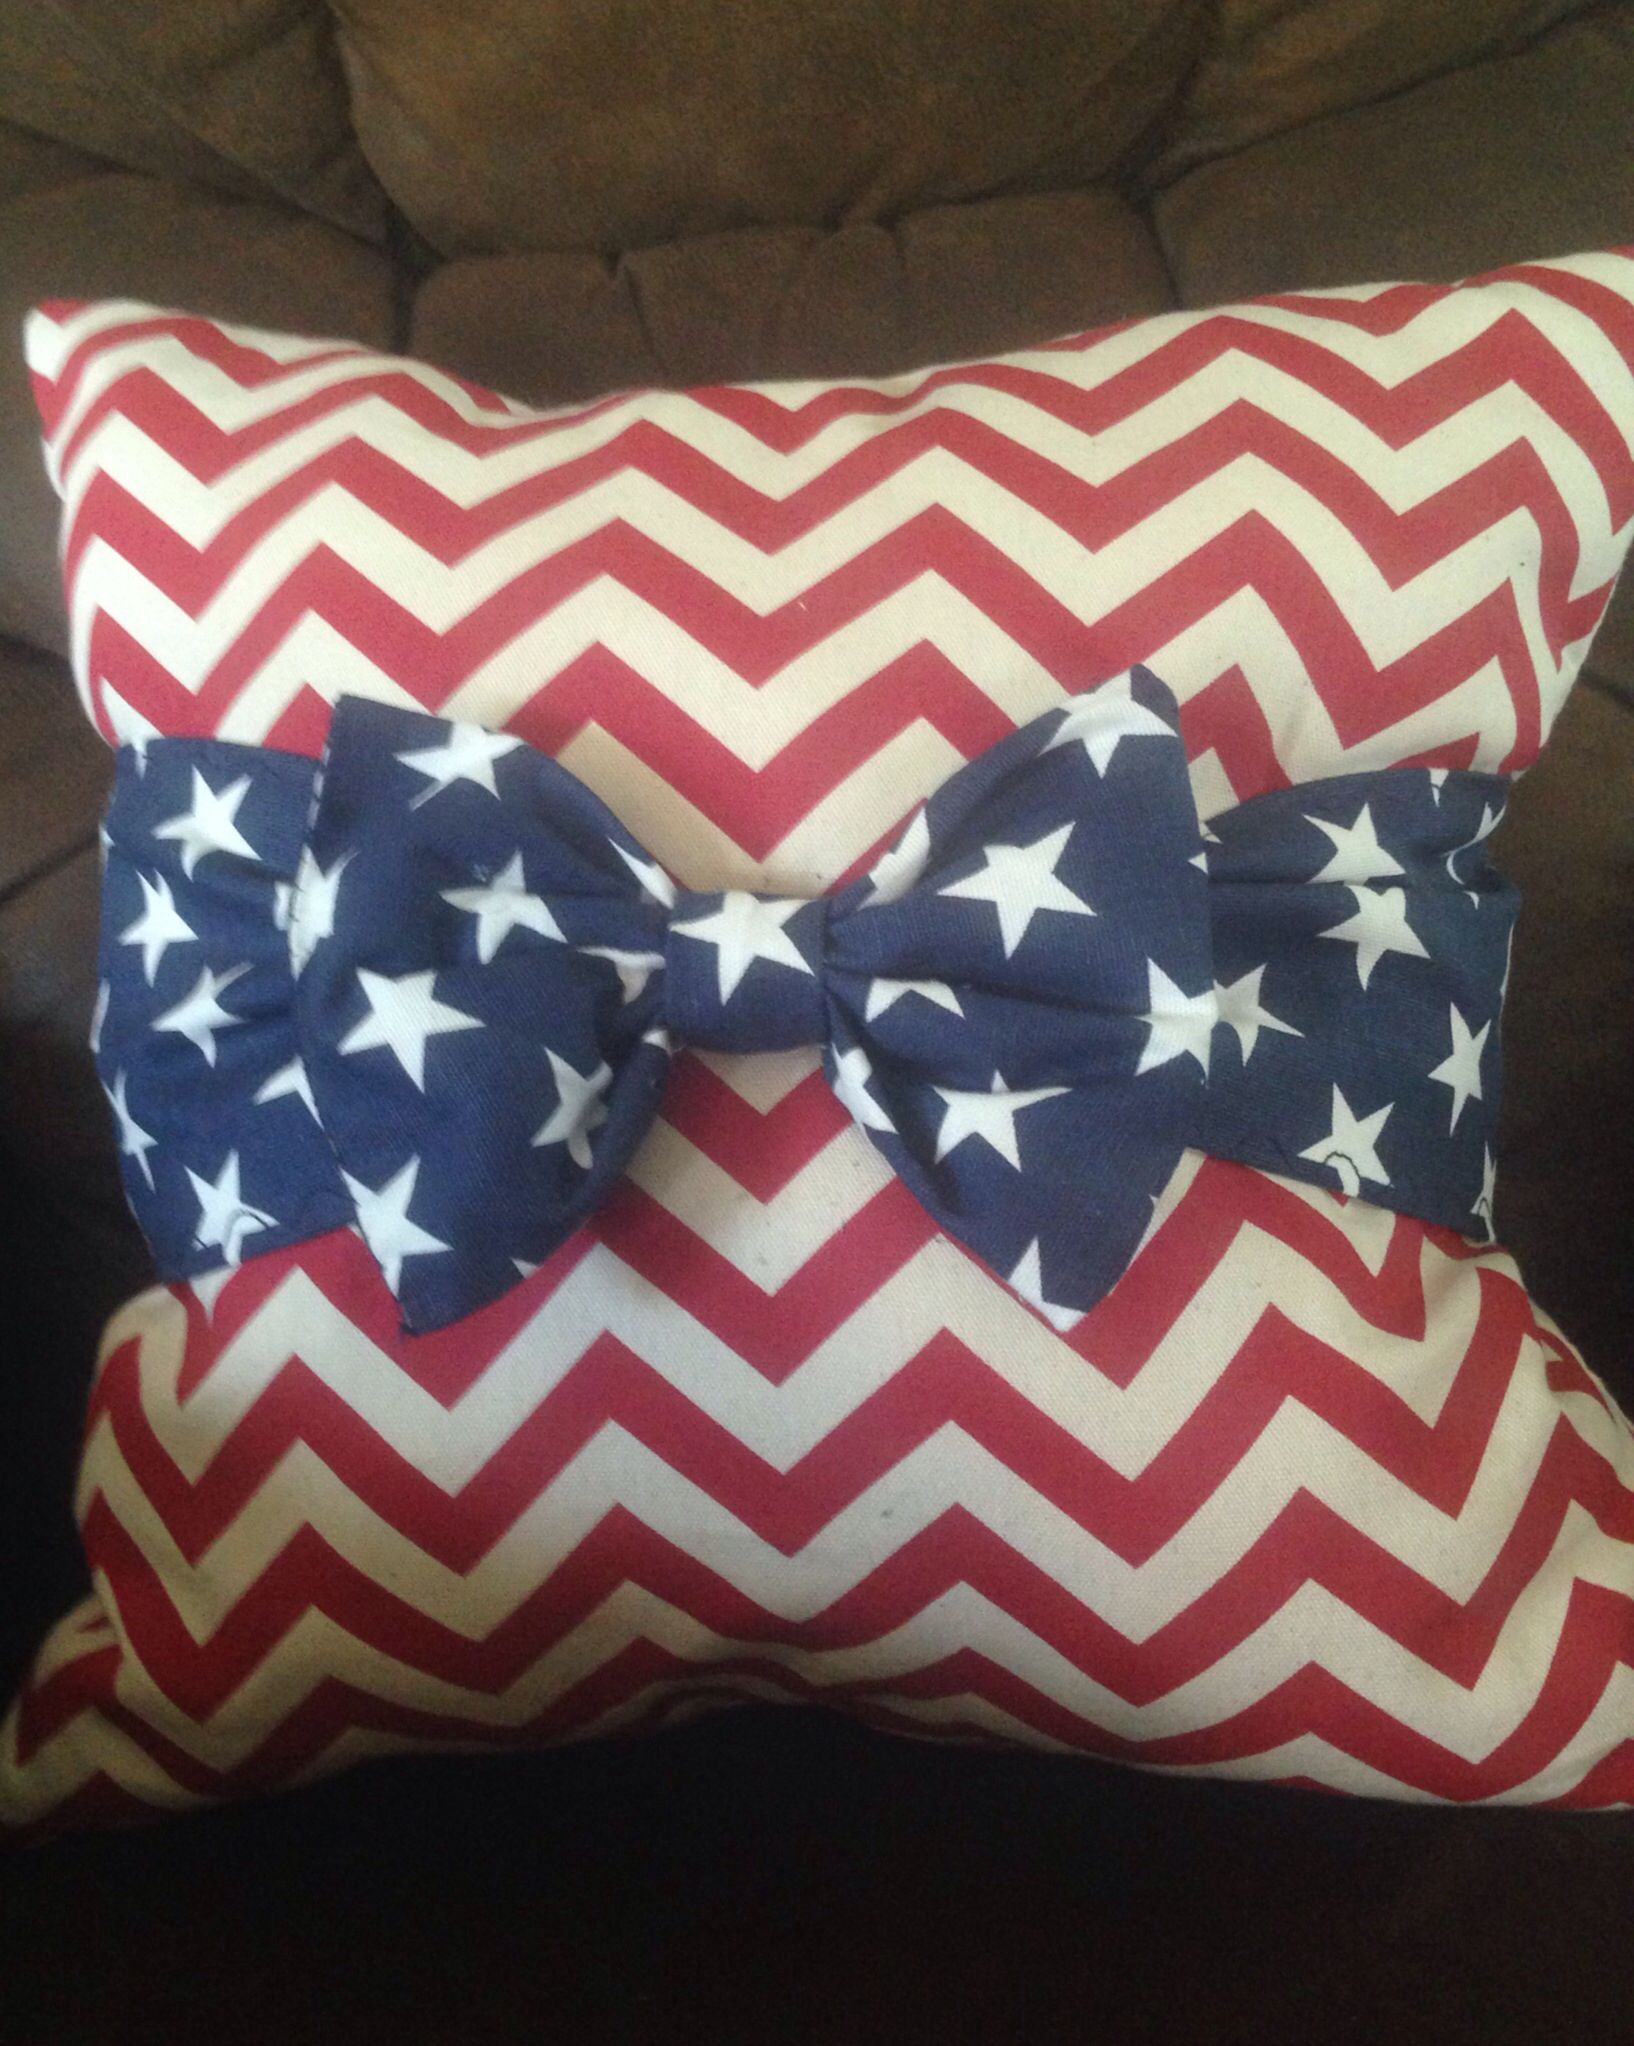 I need to tie Red Bows on my blue pillows on my porch for 4th of